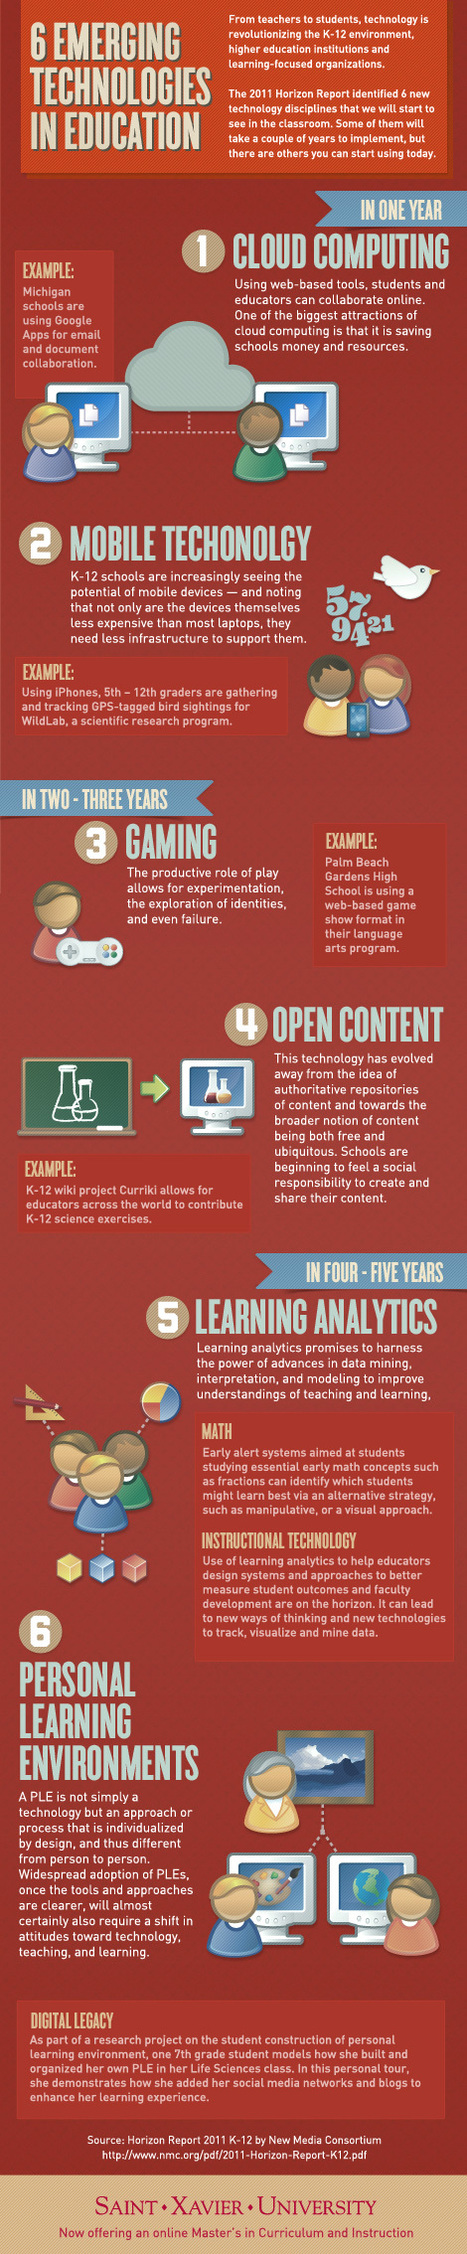 6 Emerging Technologies in Education (infographic) | EdTech Times | EDUCATIONAL TECHNOLOGY | Scoop.it